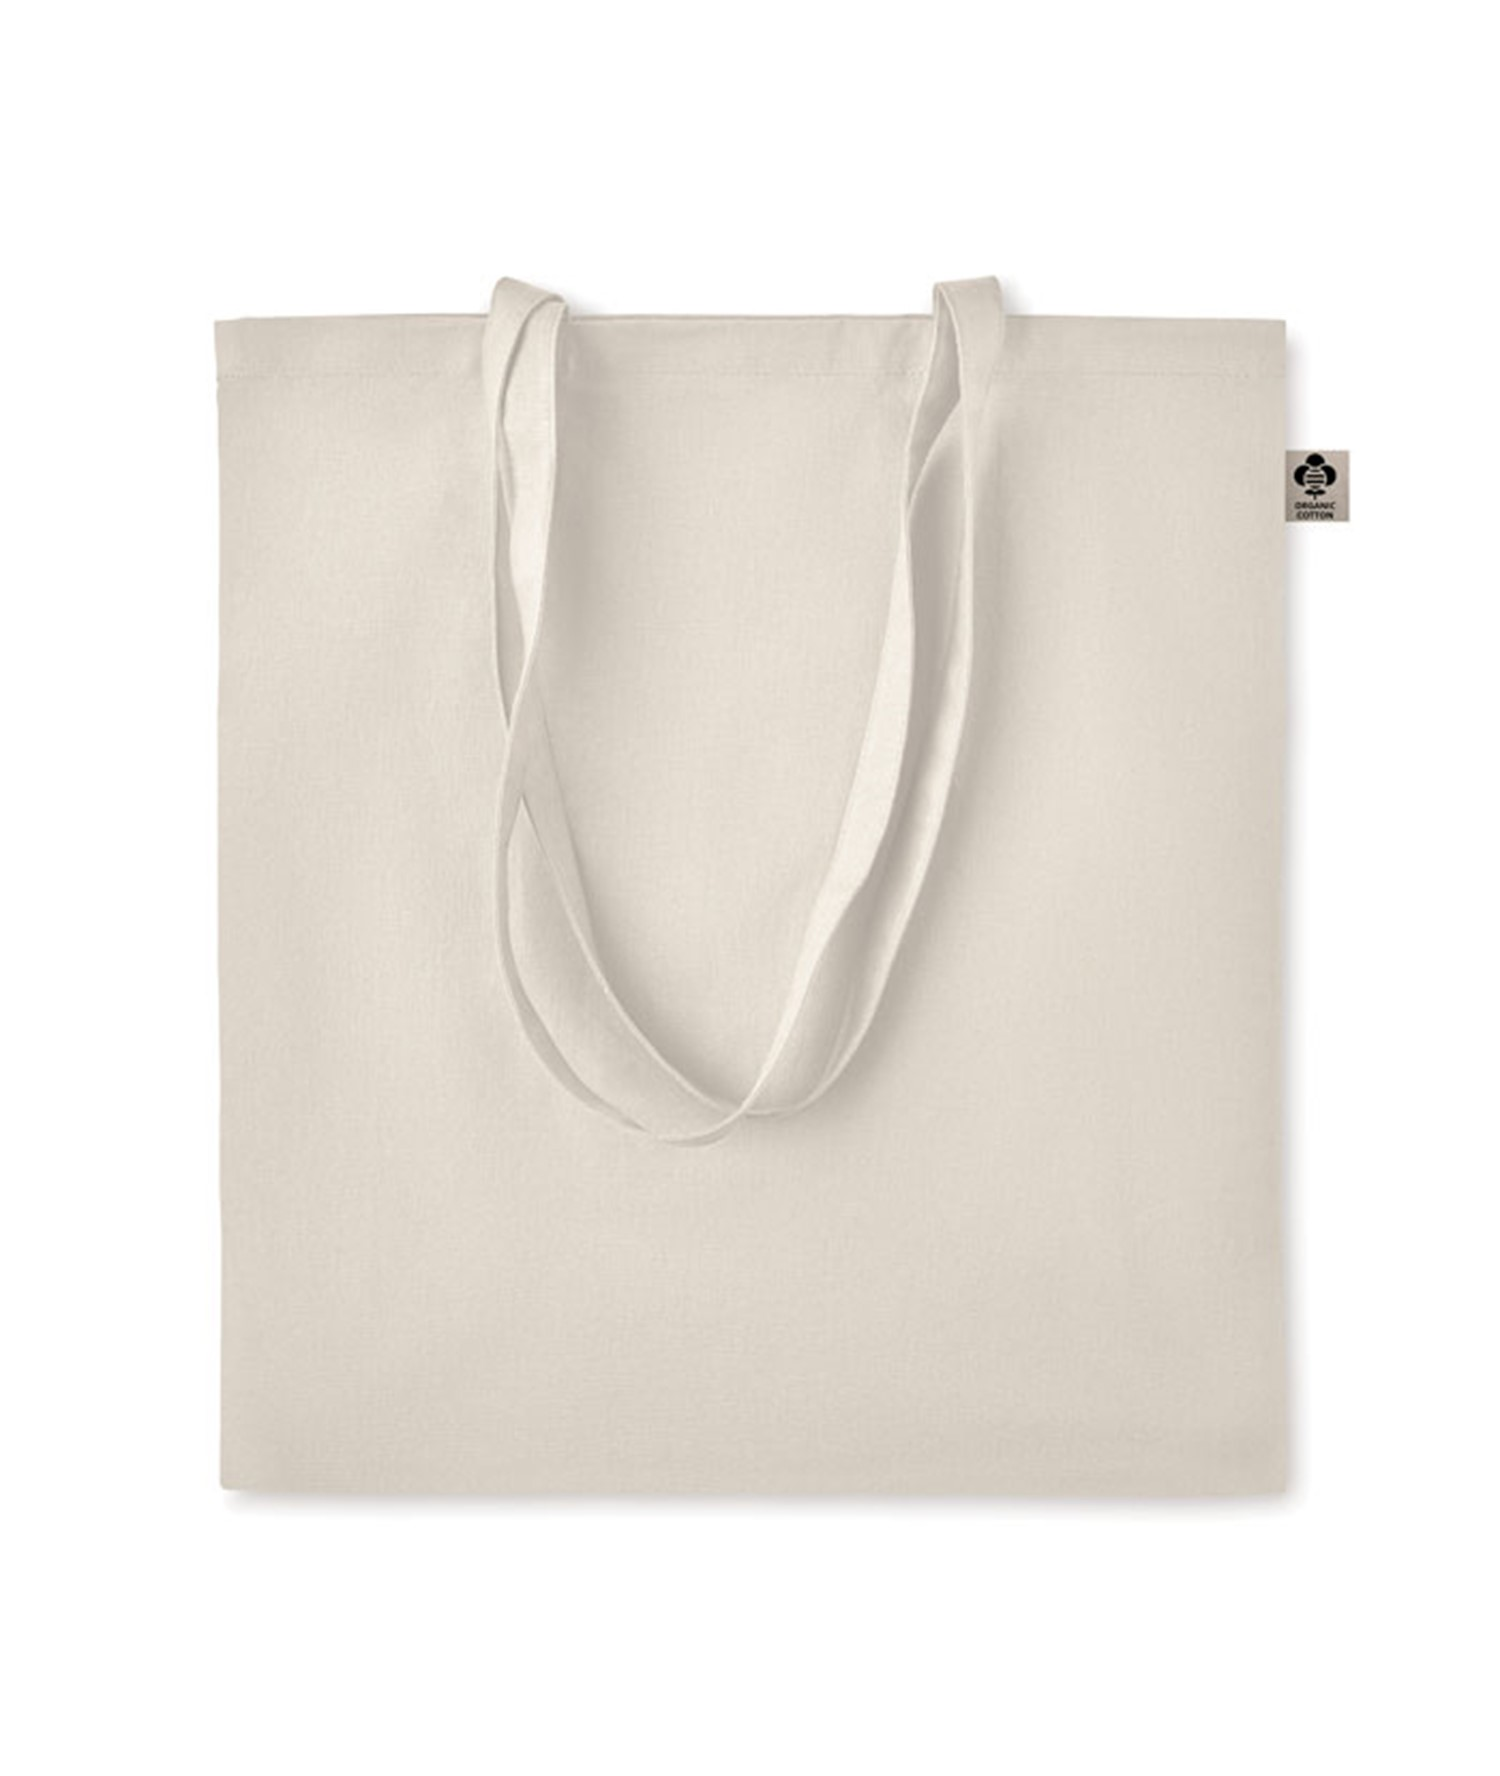 ZIMDE - ORGANIC COTTON SHOPPING BAG